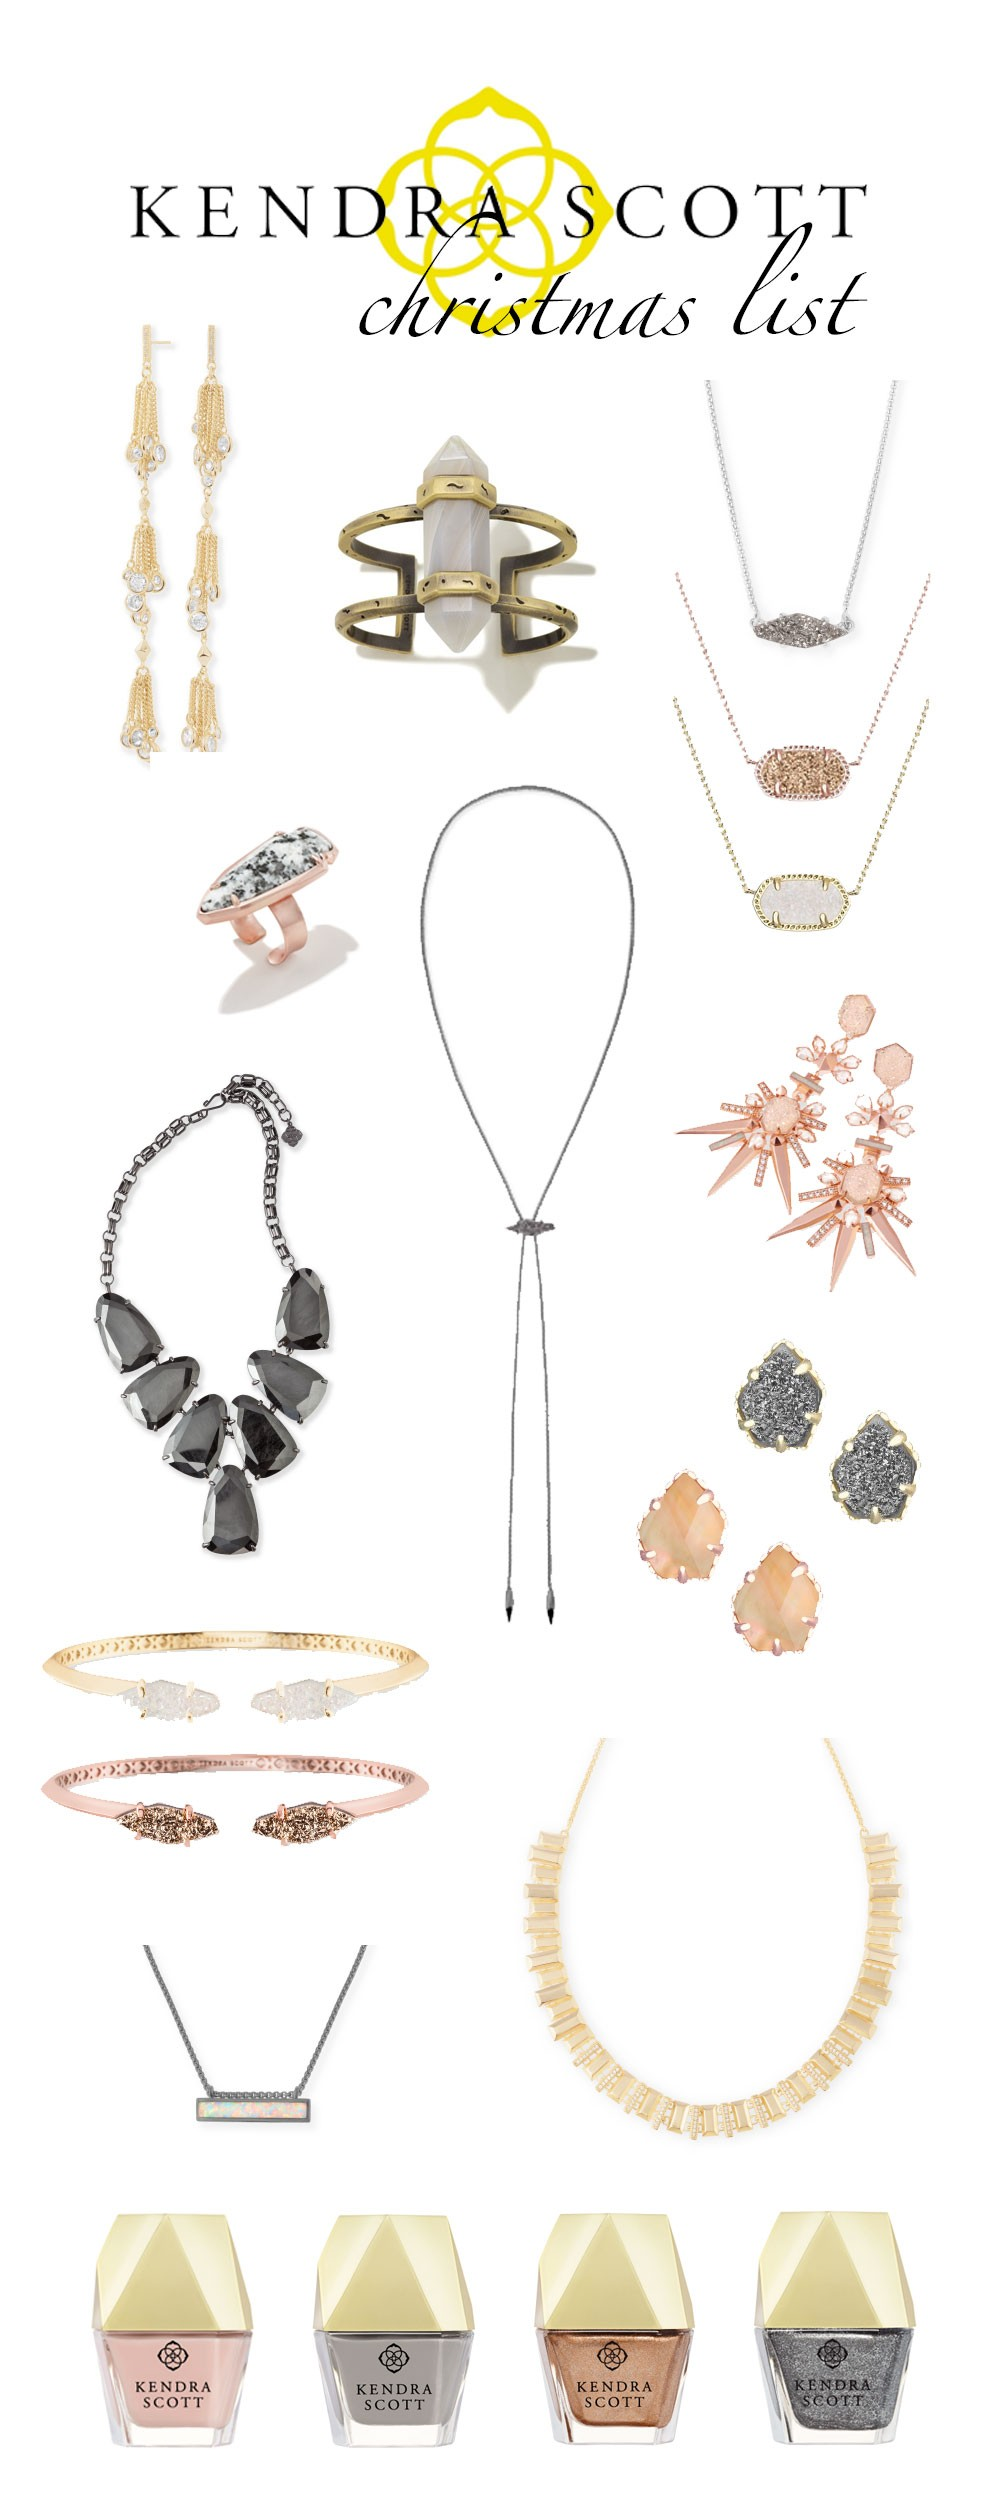 ... on your lists. To shop the pieces (see the prices, ect) just click on the image of the piece or scroll through the widget below and click on the link!